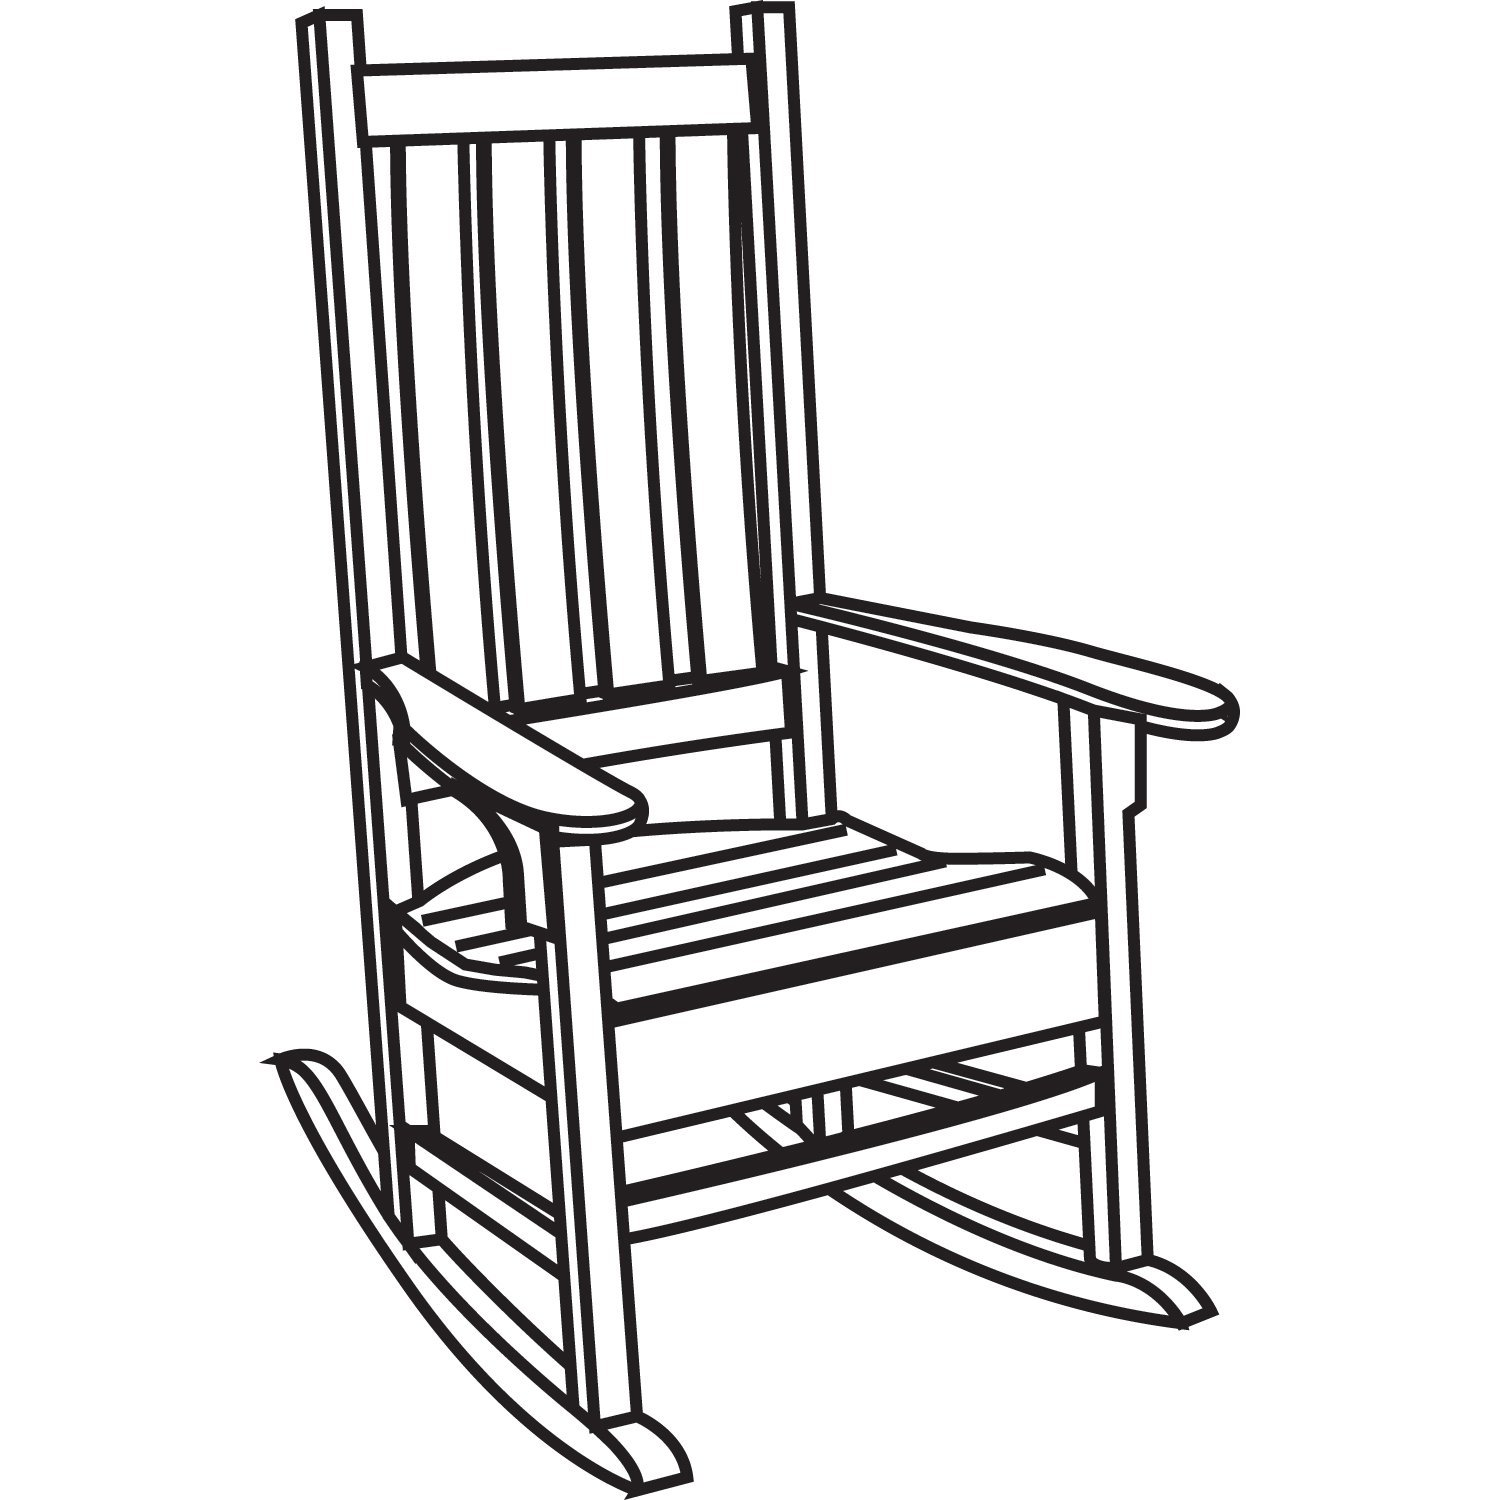 Cartoon Rocking Chair Clipart | Free download on ClipArtMag